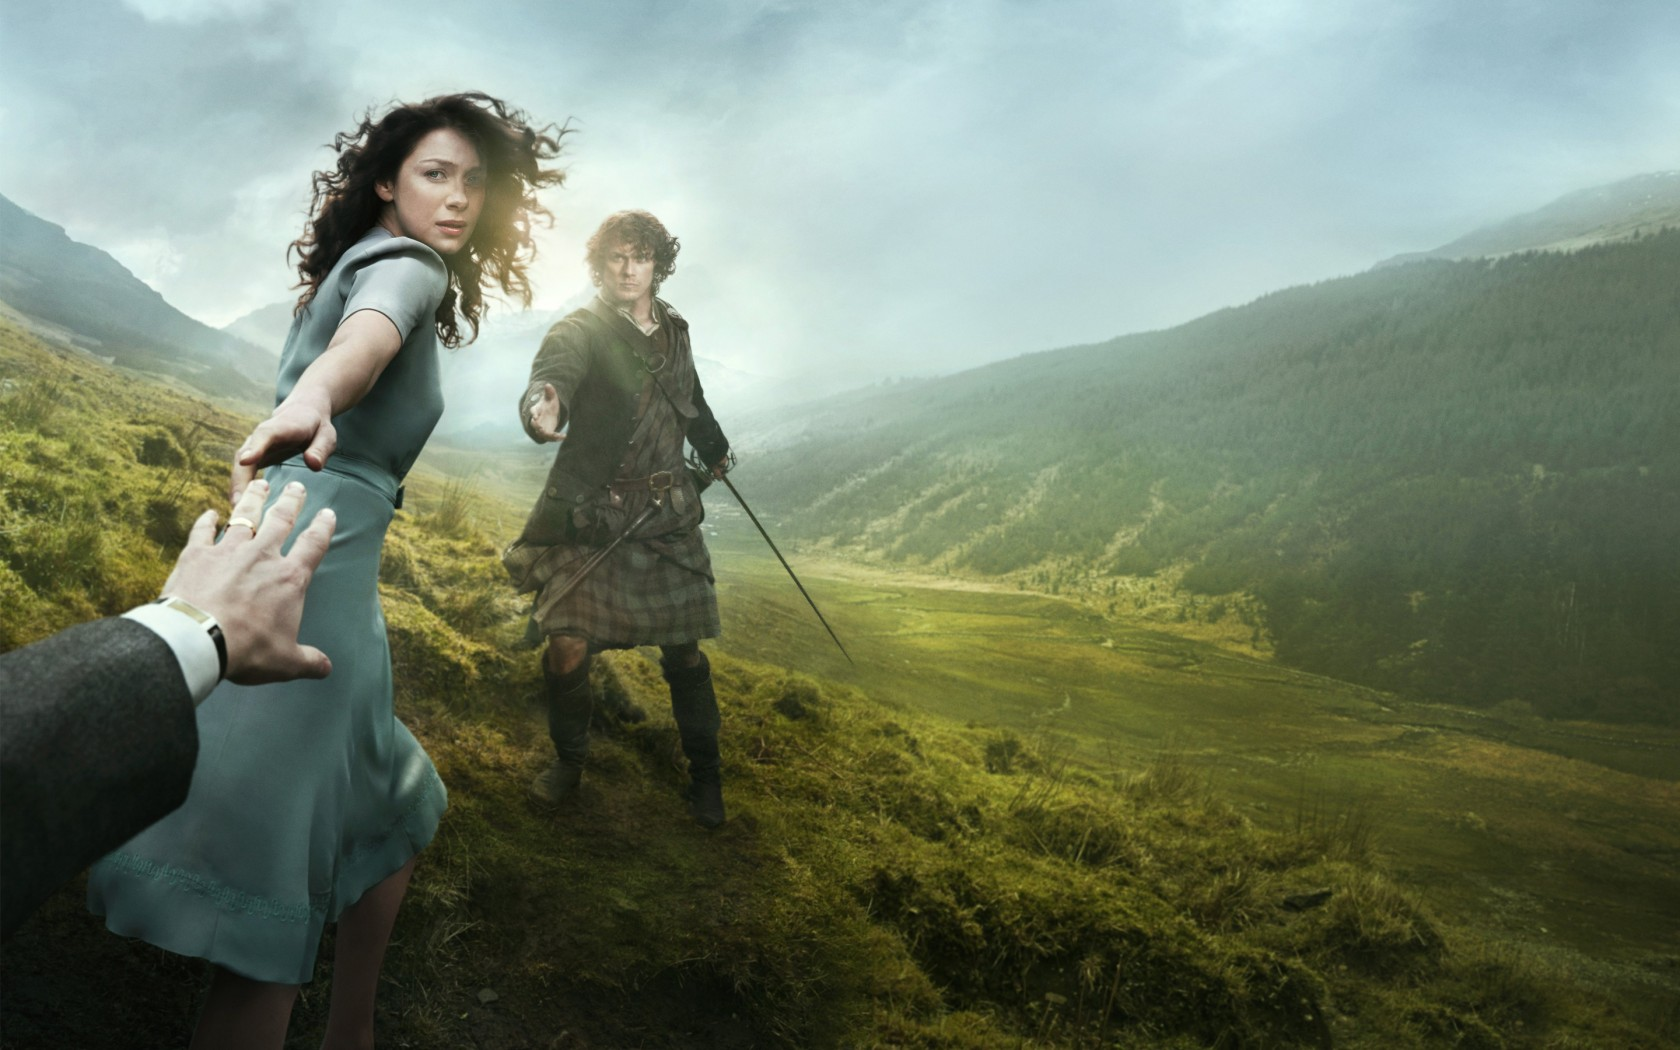 Cars Wallpapers 2014 Hd Download Outlander 2014 Tv Series Wallpapers Hd Wallpapers Id